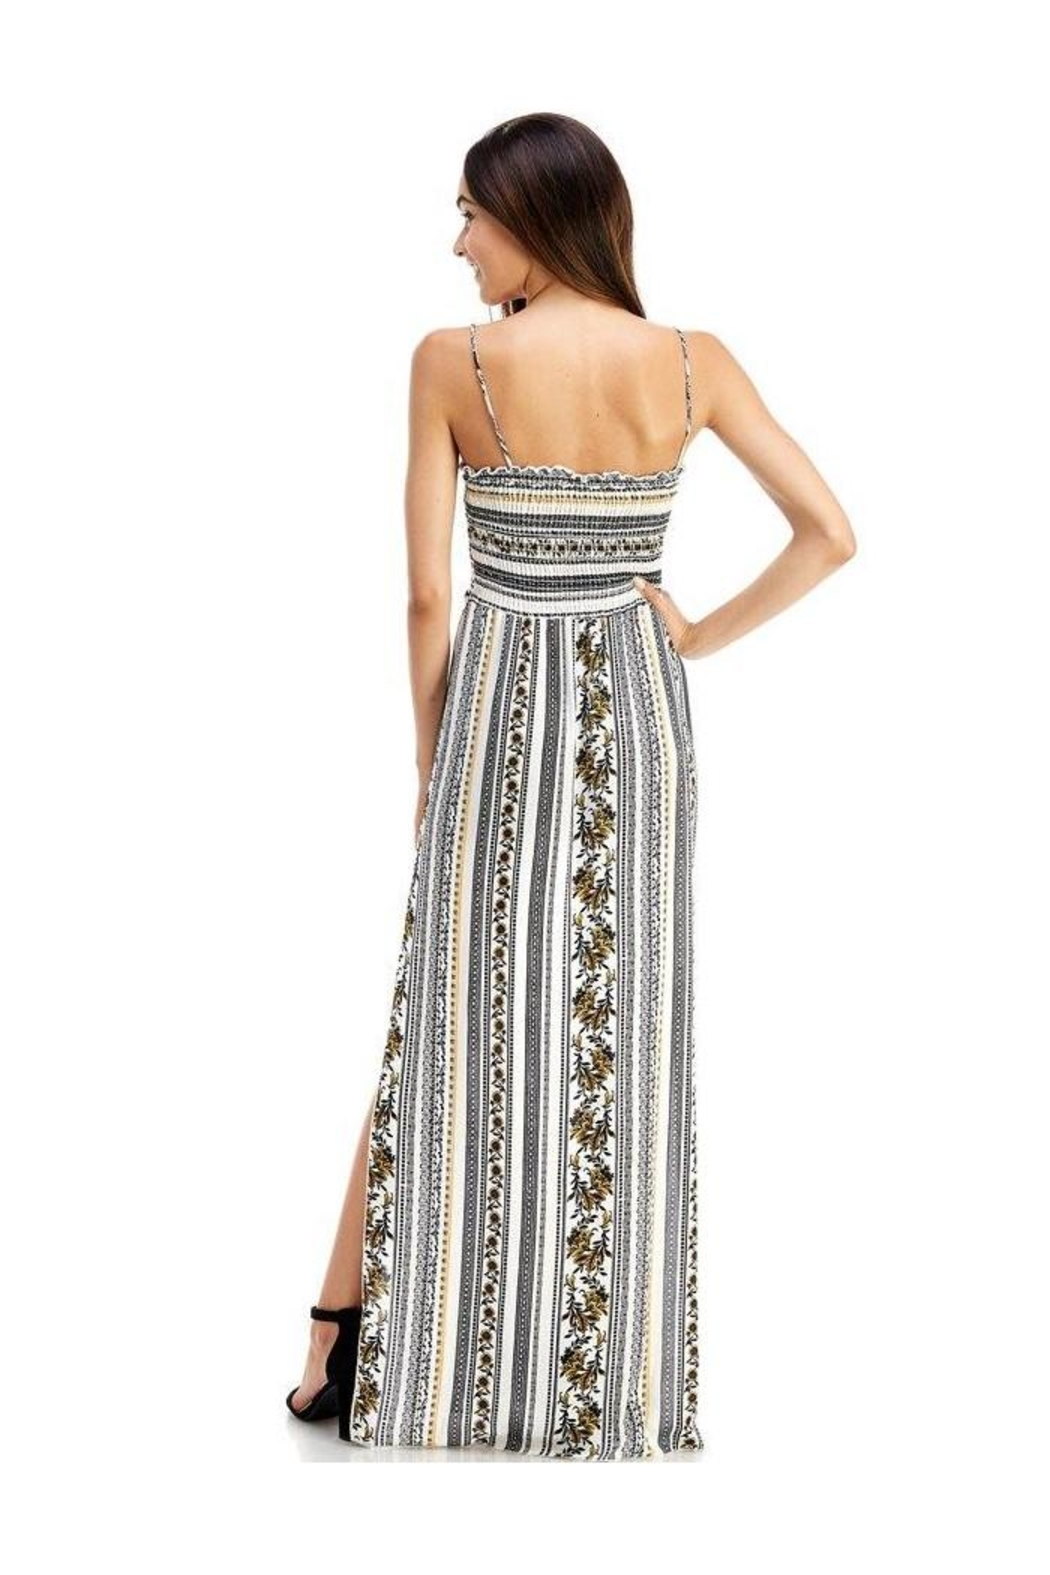 Miley and Molly Ethnic Linear Print Smocking Tube Top Maxi - Side Cropped Image